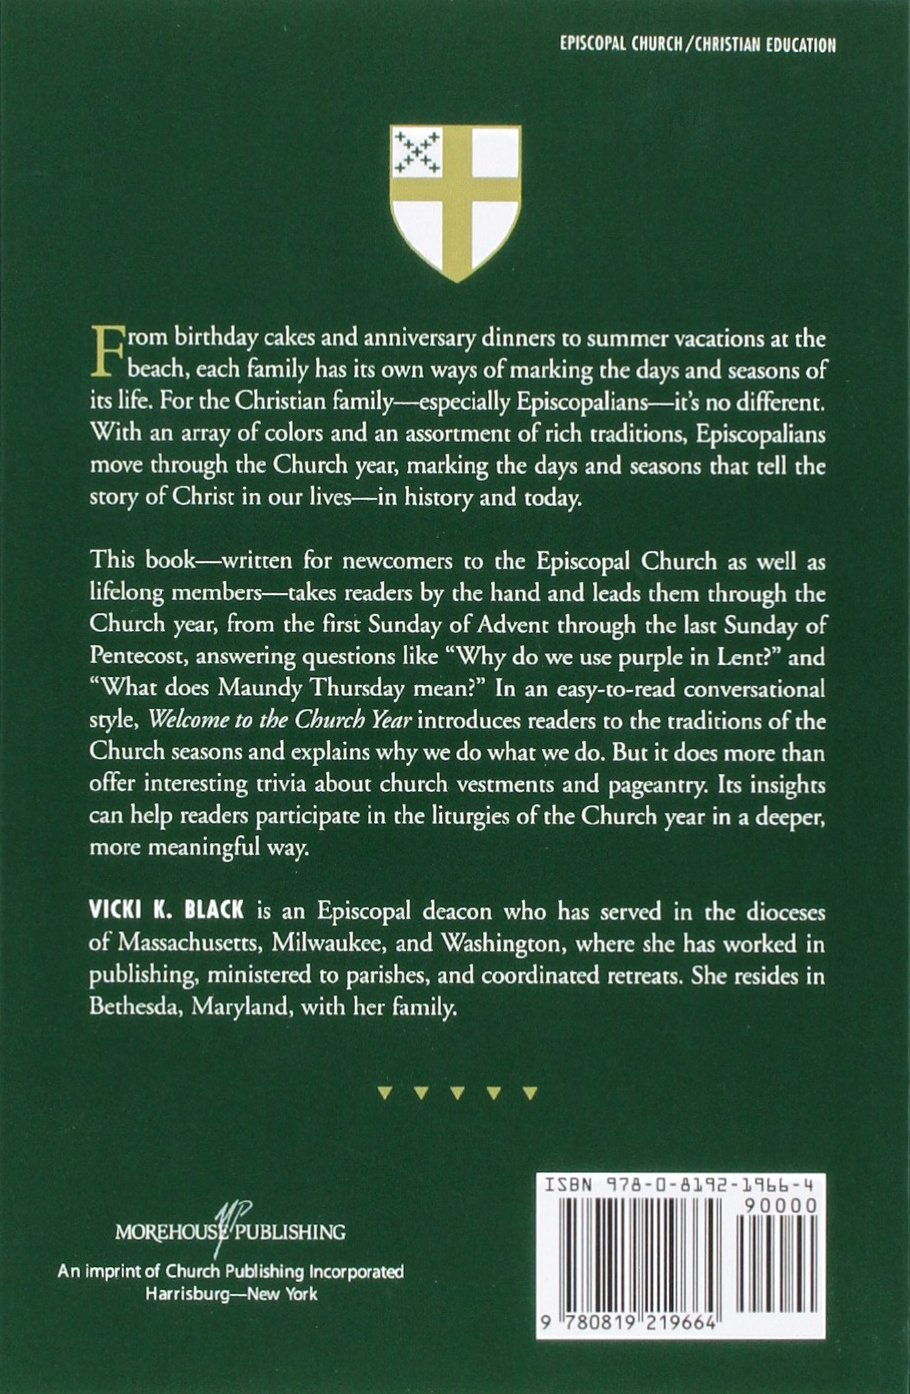 Welcome to the church year an introduction to the seasons of the welcome to the church year an introduction to the seasons of the episcopal church welcome to the episcopal church vicki k black 9780819219664 fandeluxe Gallery